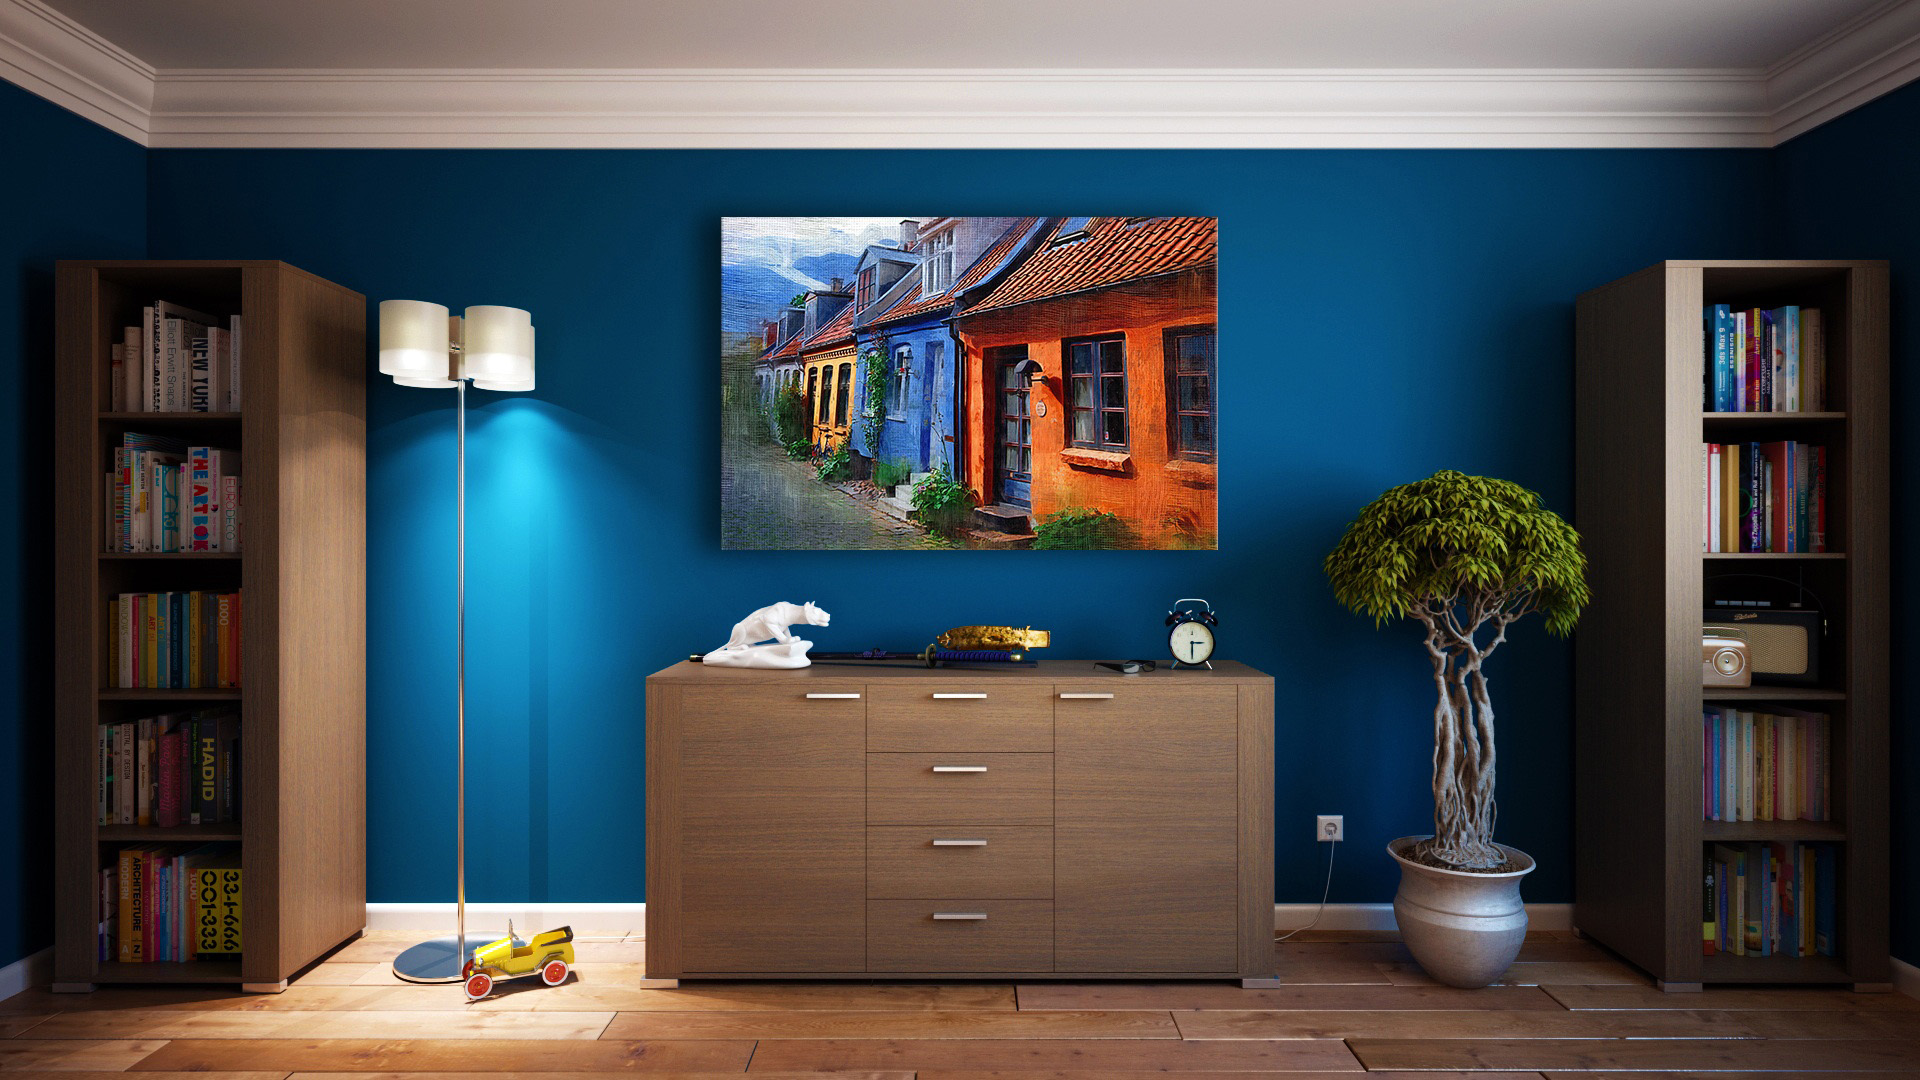 Room with painting on the wall image - Free stock photo ... on Room Painting id=24404